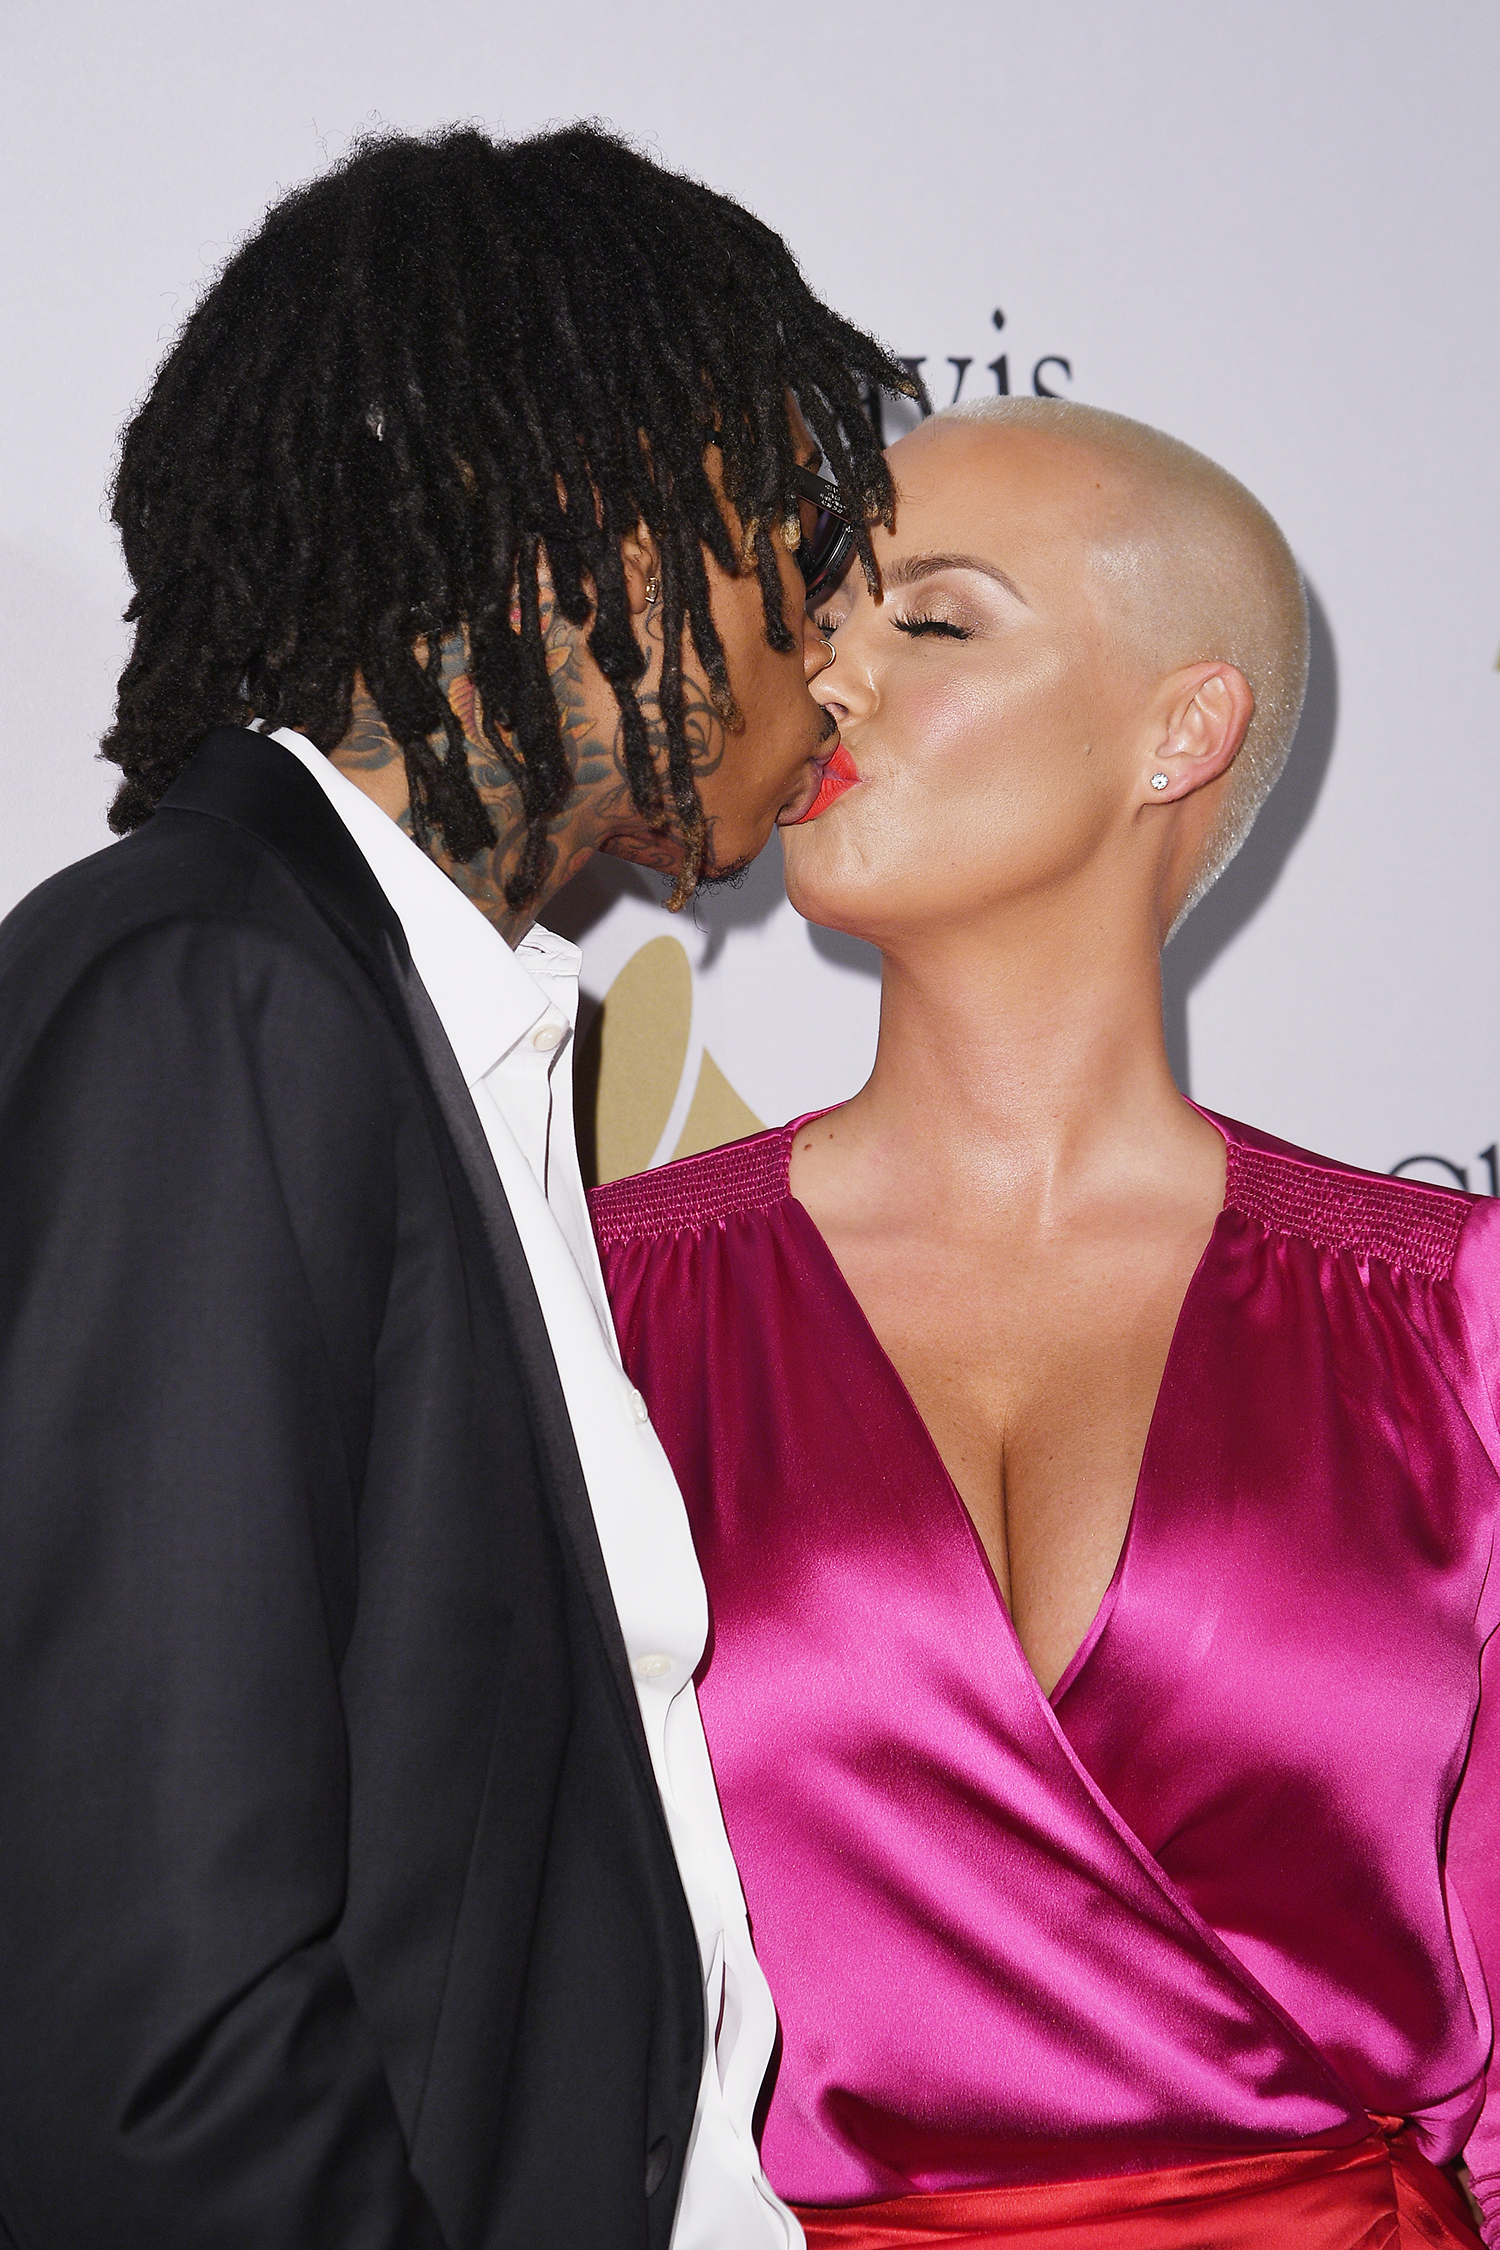 Hoe lang is Wiz Khalifa en Amber Rose is dating Latino dating Sydney